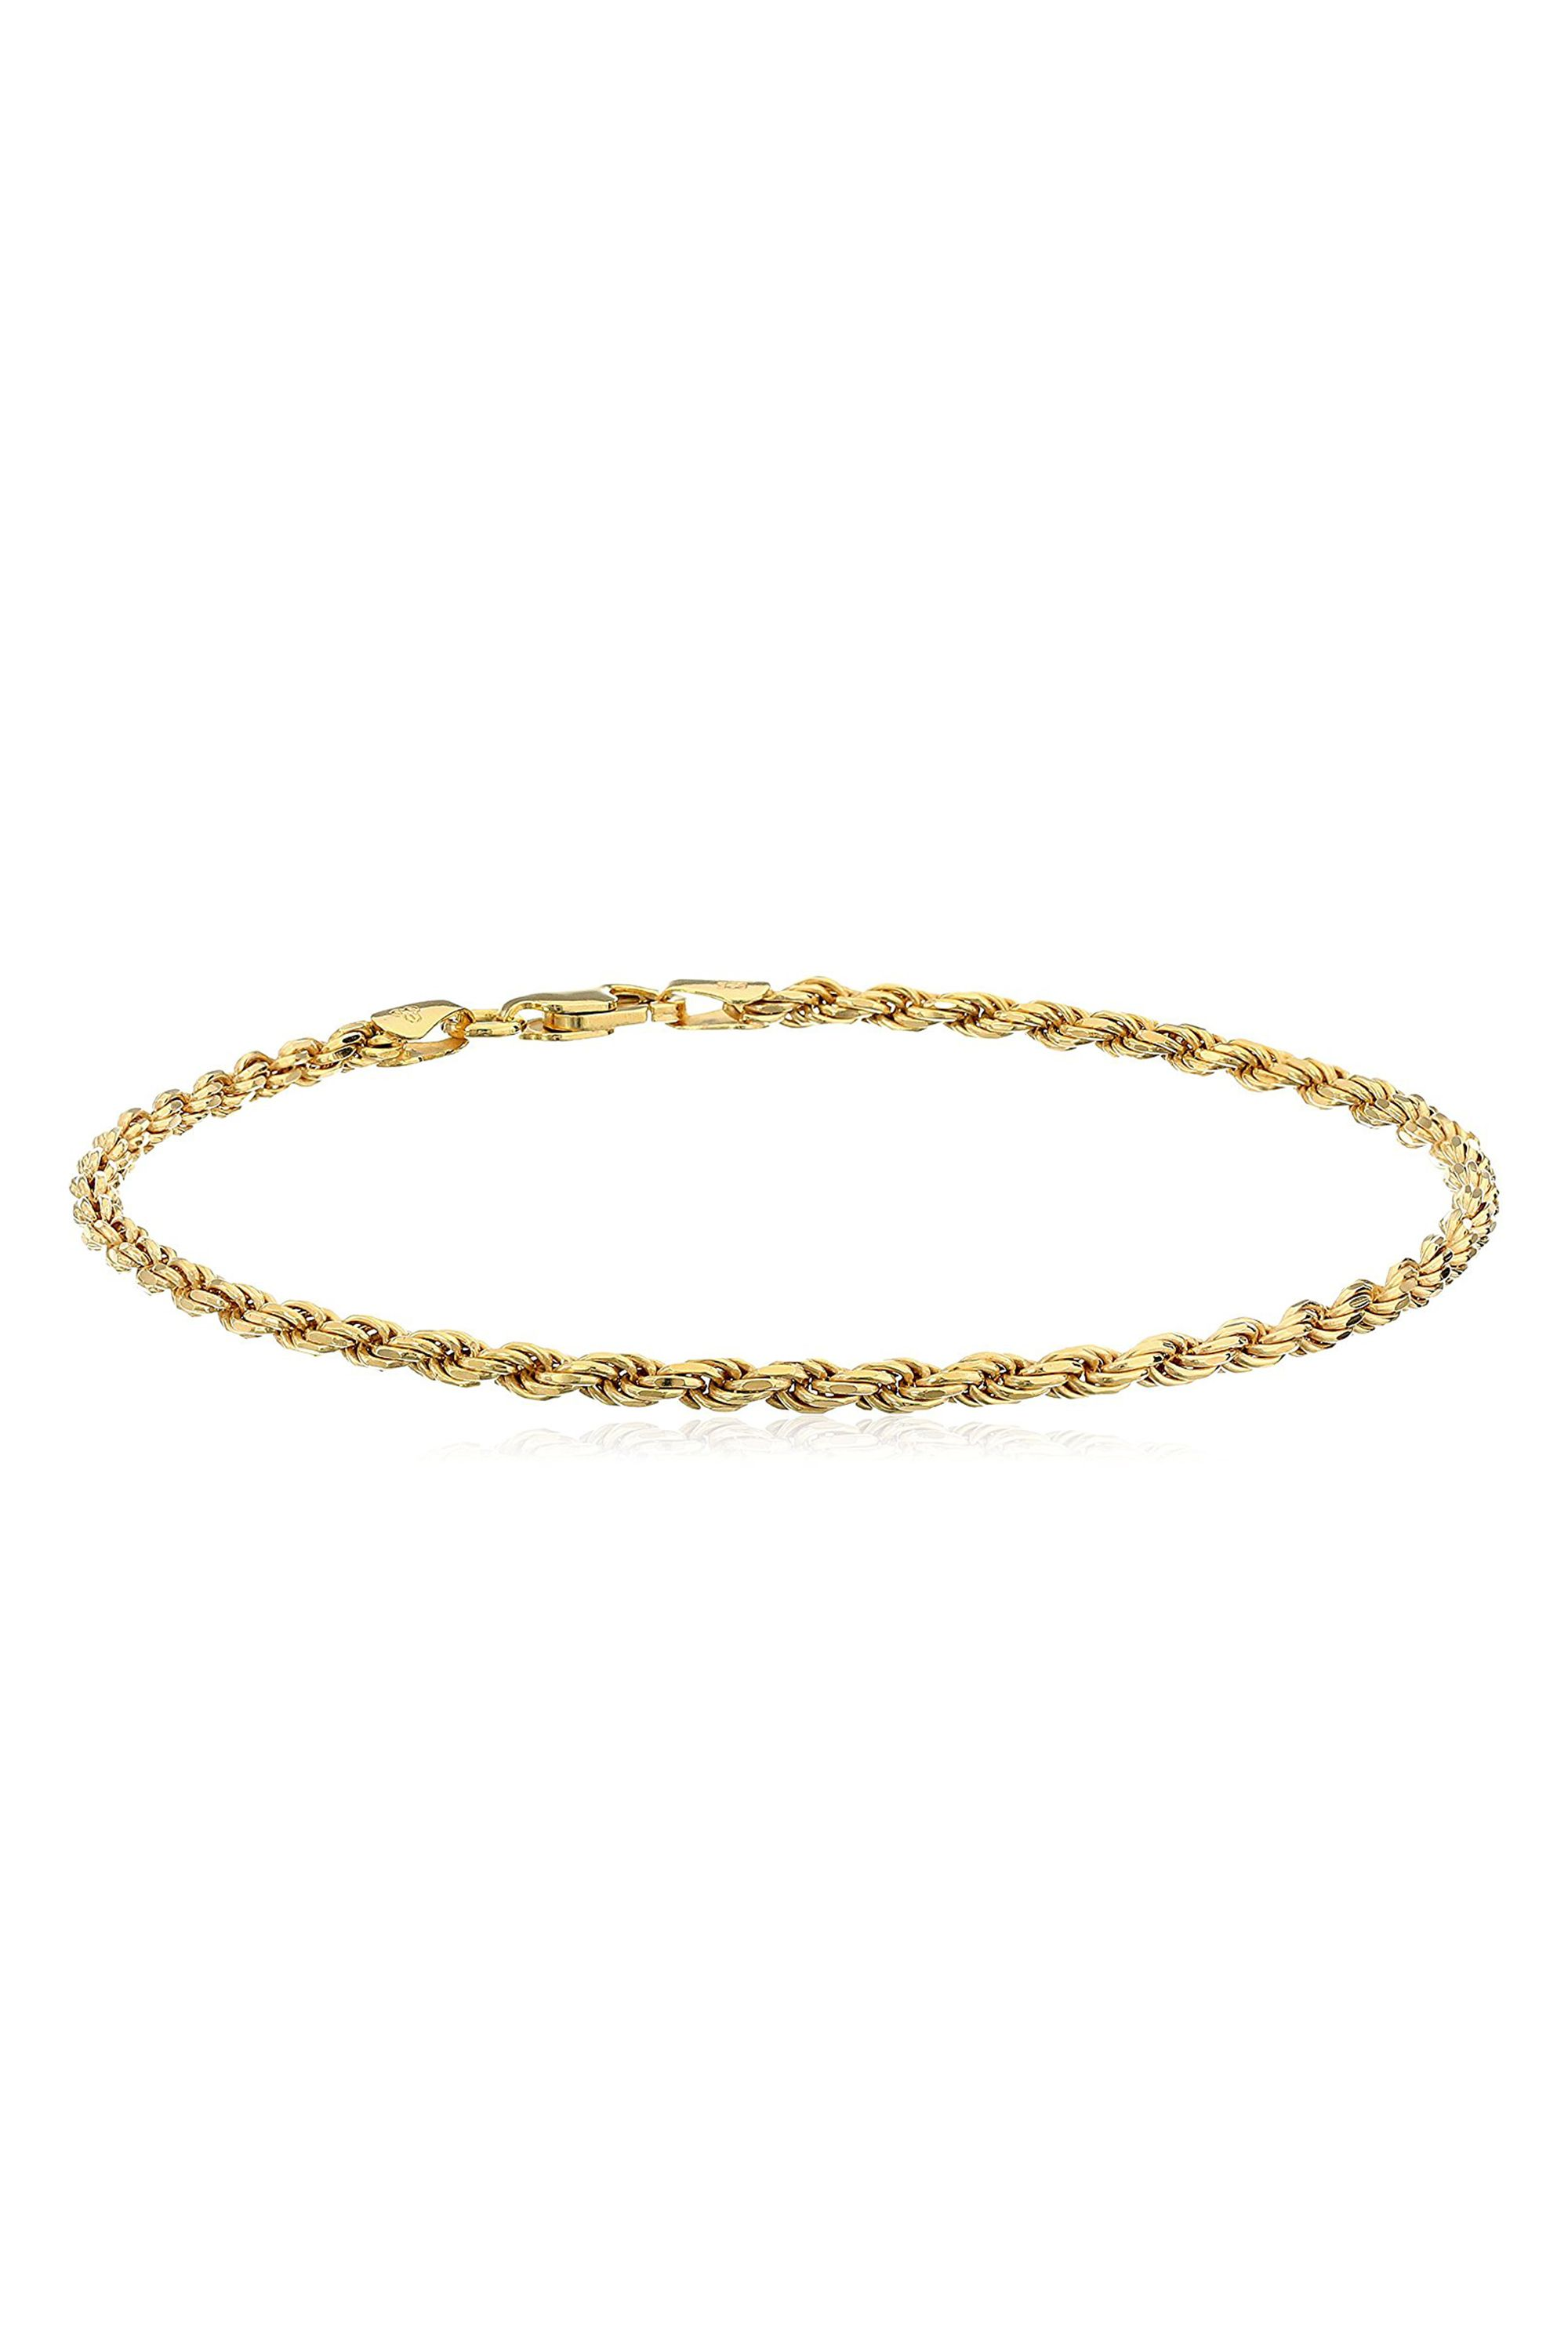 flower just bracelet gold for sale shop women yellow pure womens online design bracelets anklet jewels